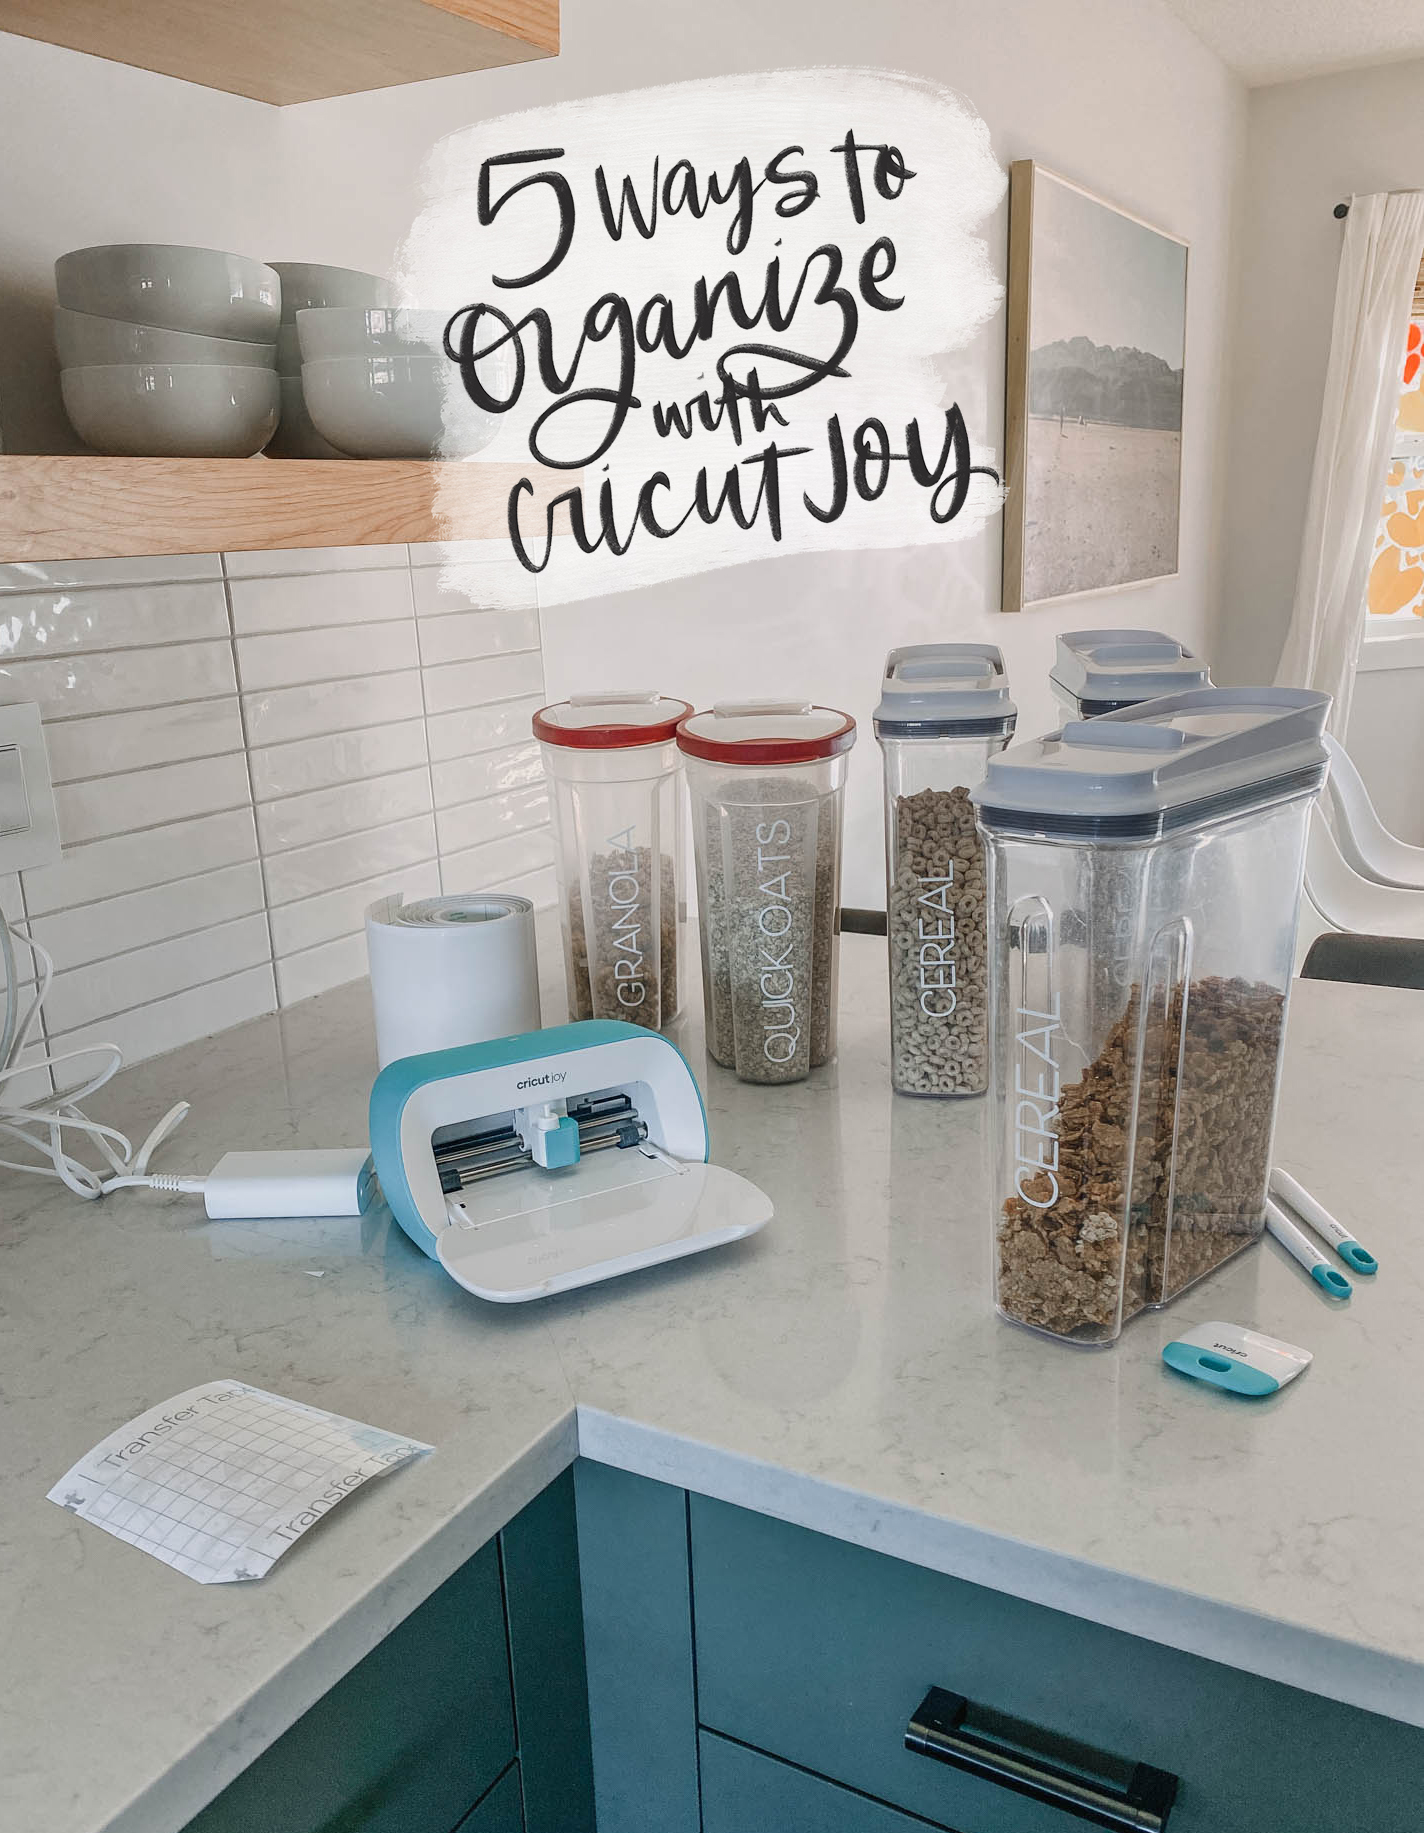 5 Ways to Organize your home with Cricut Joy